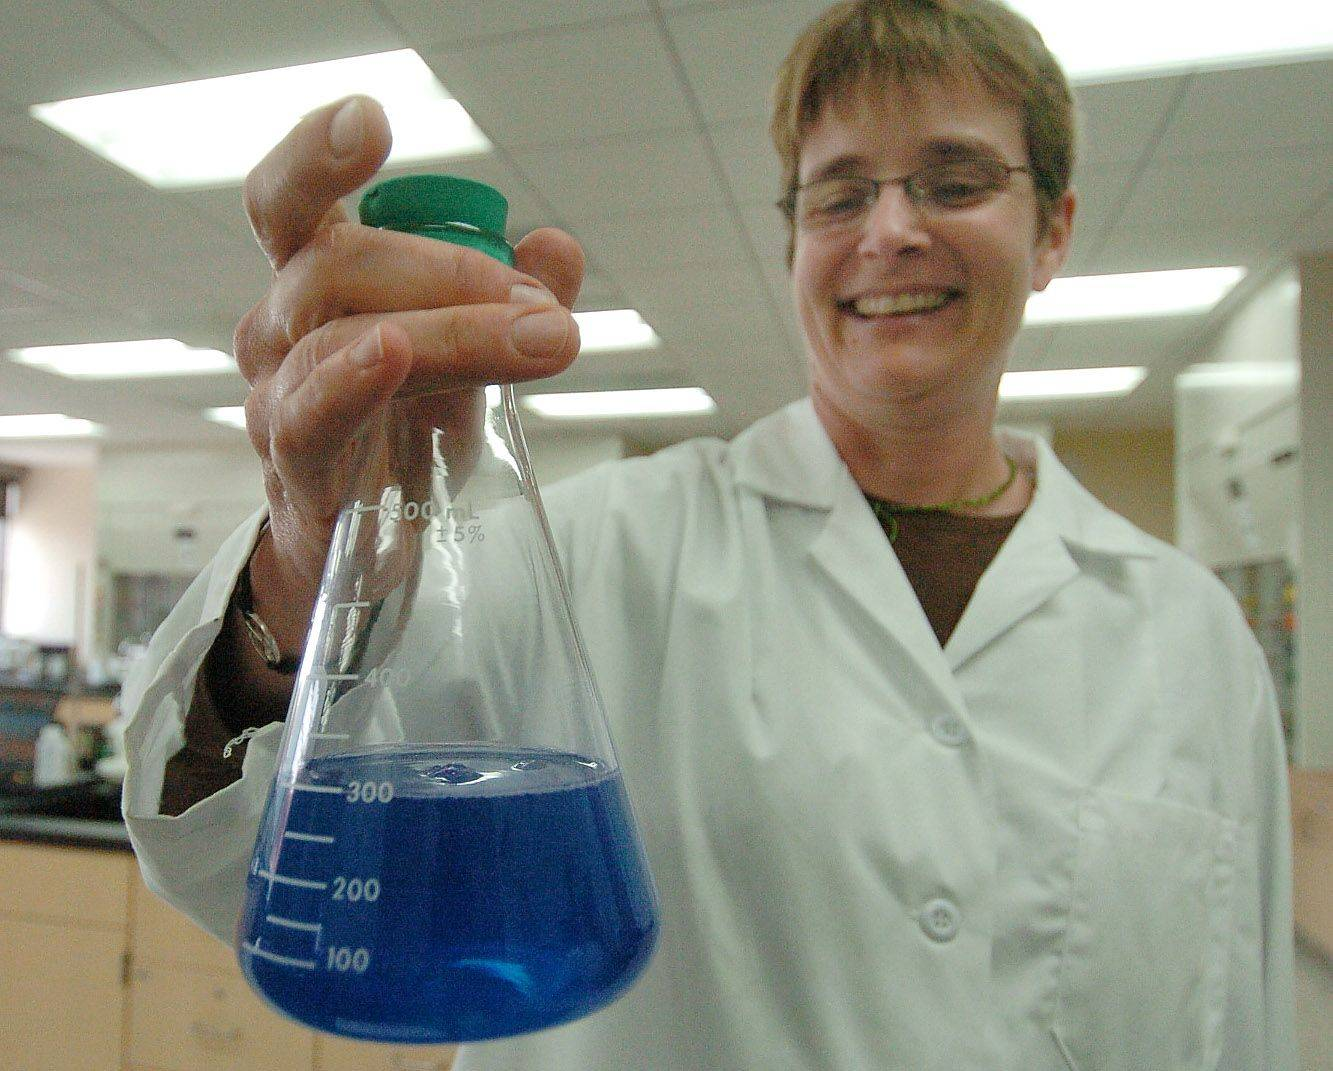 Nancy Christiensen demonstrates oxidation of sugar during a demonstration in her chemistry laboratory during an open house Friday at Waubonsee Community College's new downtown Aurora campus.